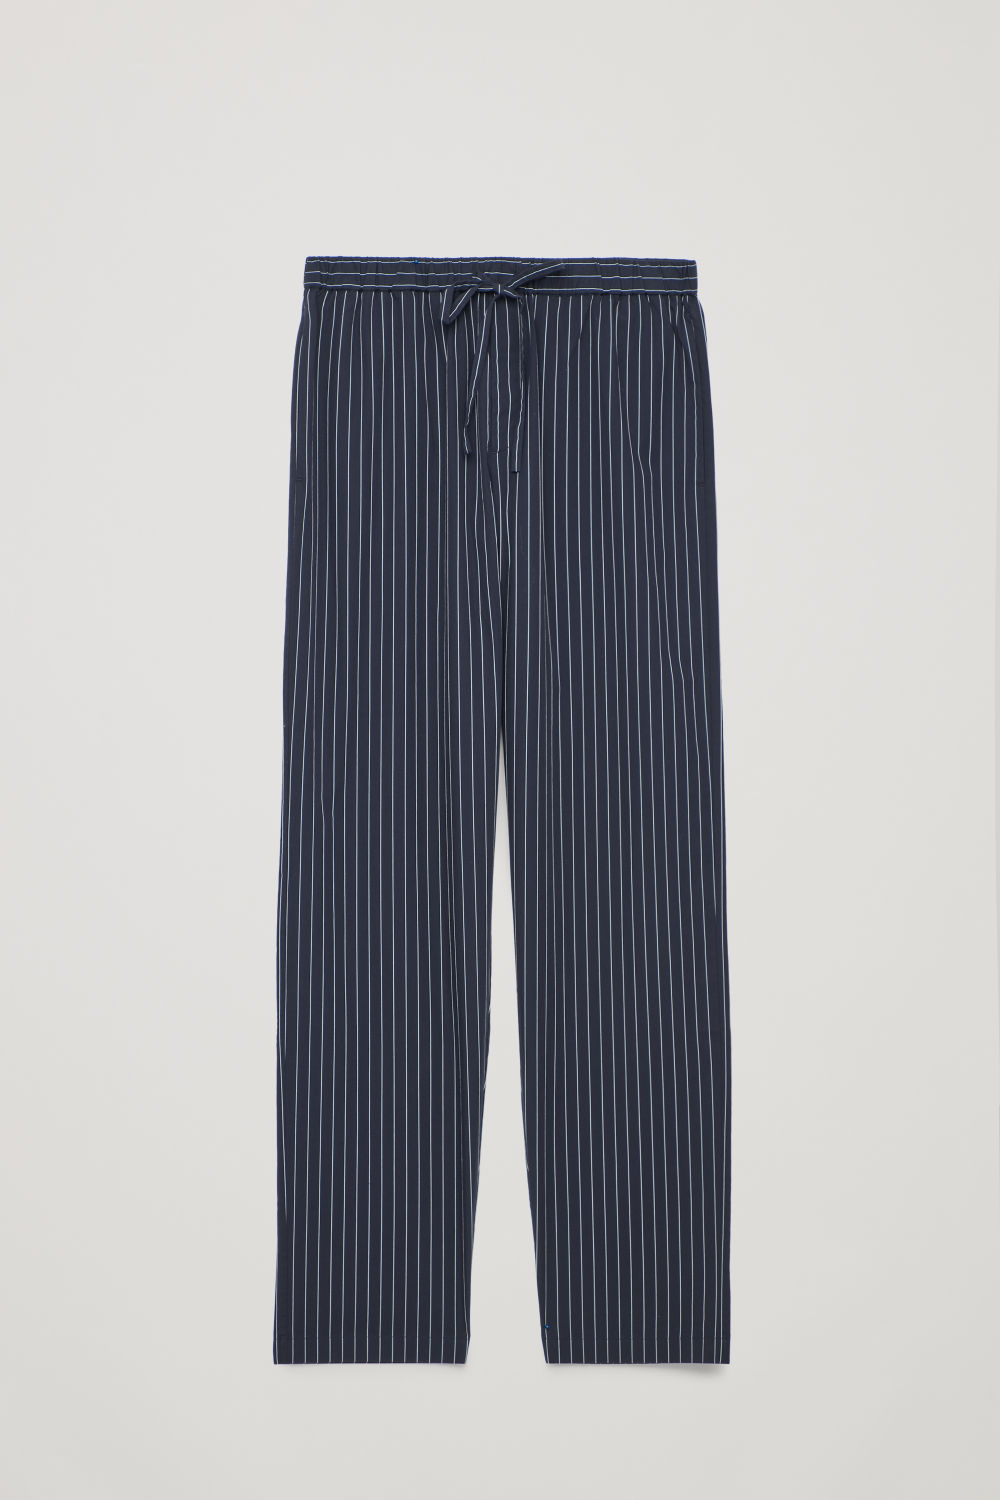 PINSTRIPED PYJAMA TROUSERS